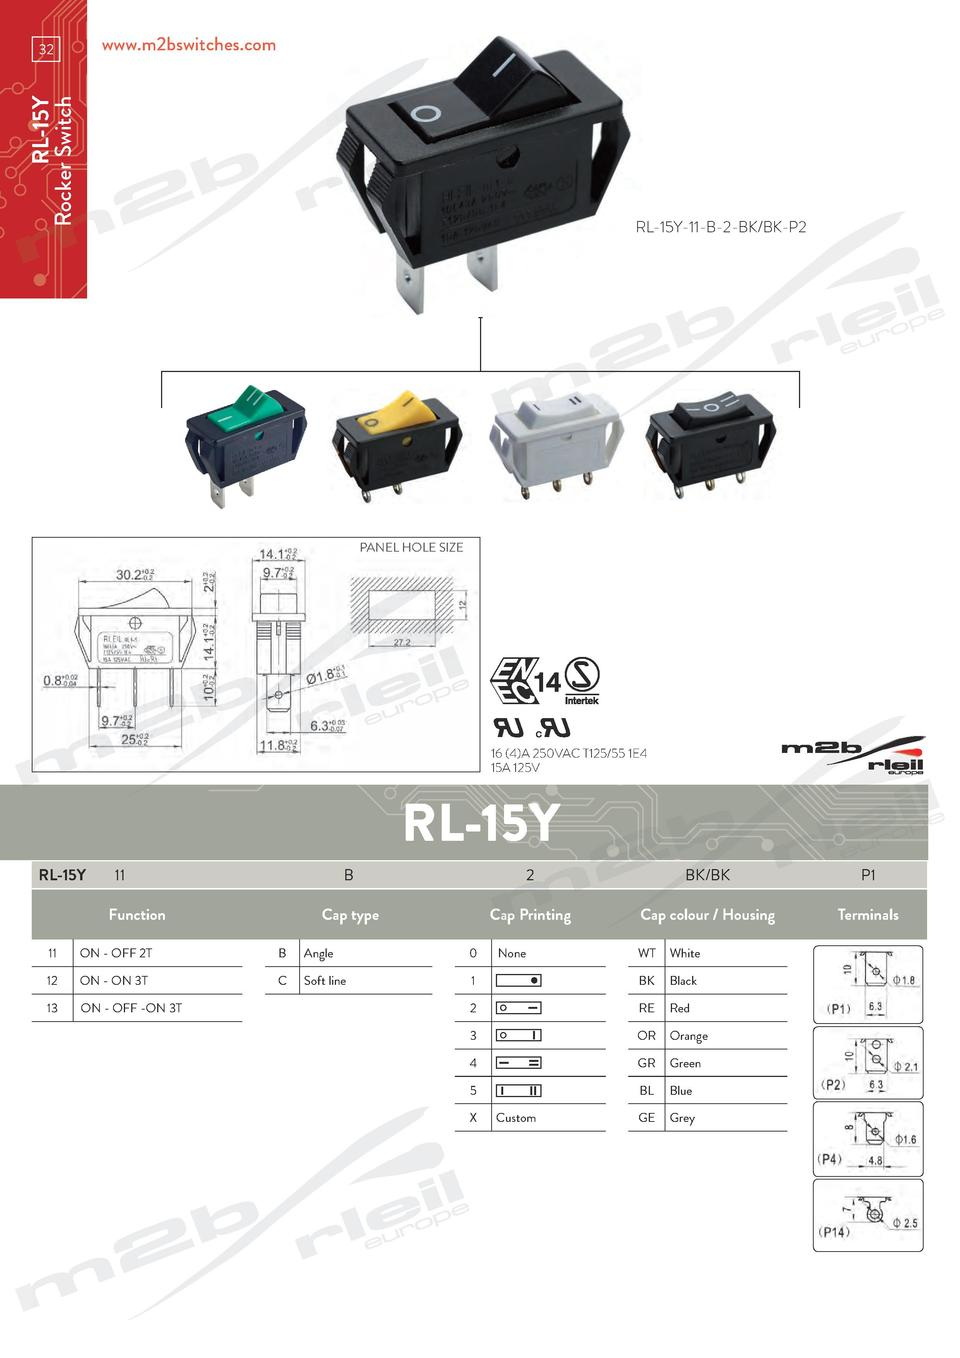 www.m2bswitches.com  RL-15Y Rocker Switch  32  RL-15Y-11-B-2-BK BK-P2  PANEL HOLE SIZE  16  4 A 250VAC T125 55 1E4 15A 125...